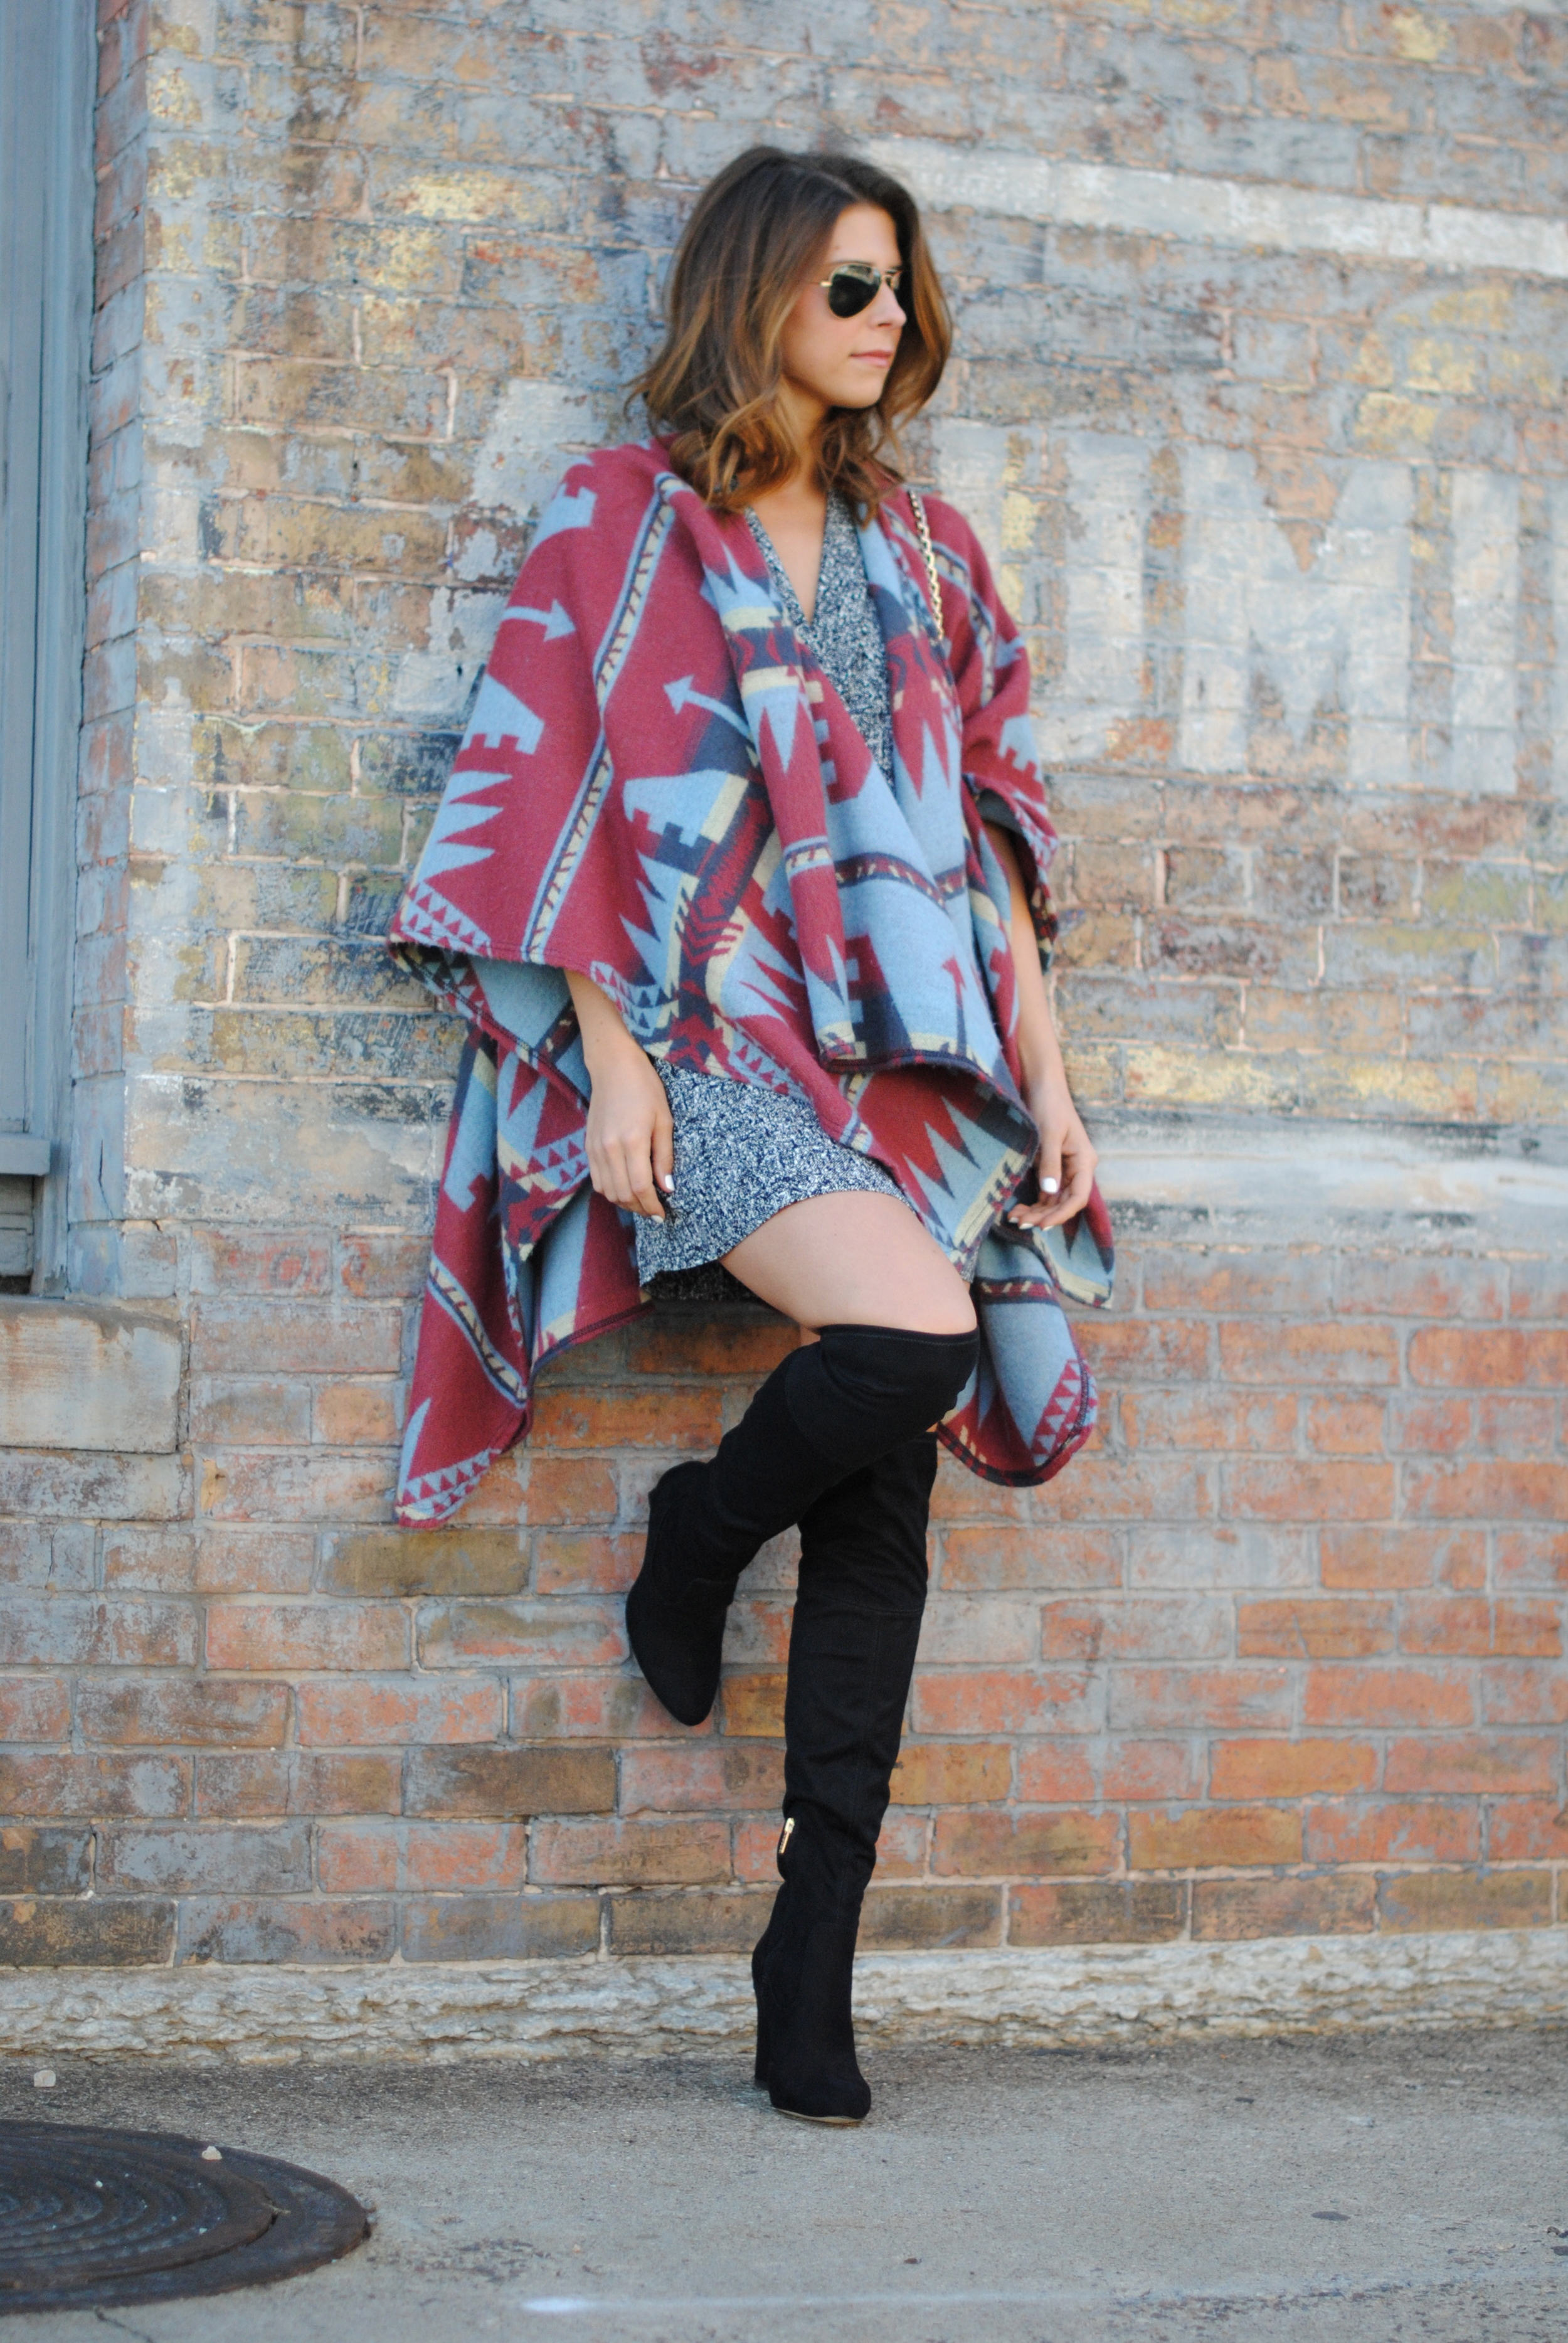 ASOS blanket cape (sold out), alternative  here and  here   Sandro dress, alternative  here  and  here    Over the knee boots   Vintage fur purse (sold out), shop the store  here    Ray-ban aviators